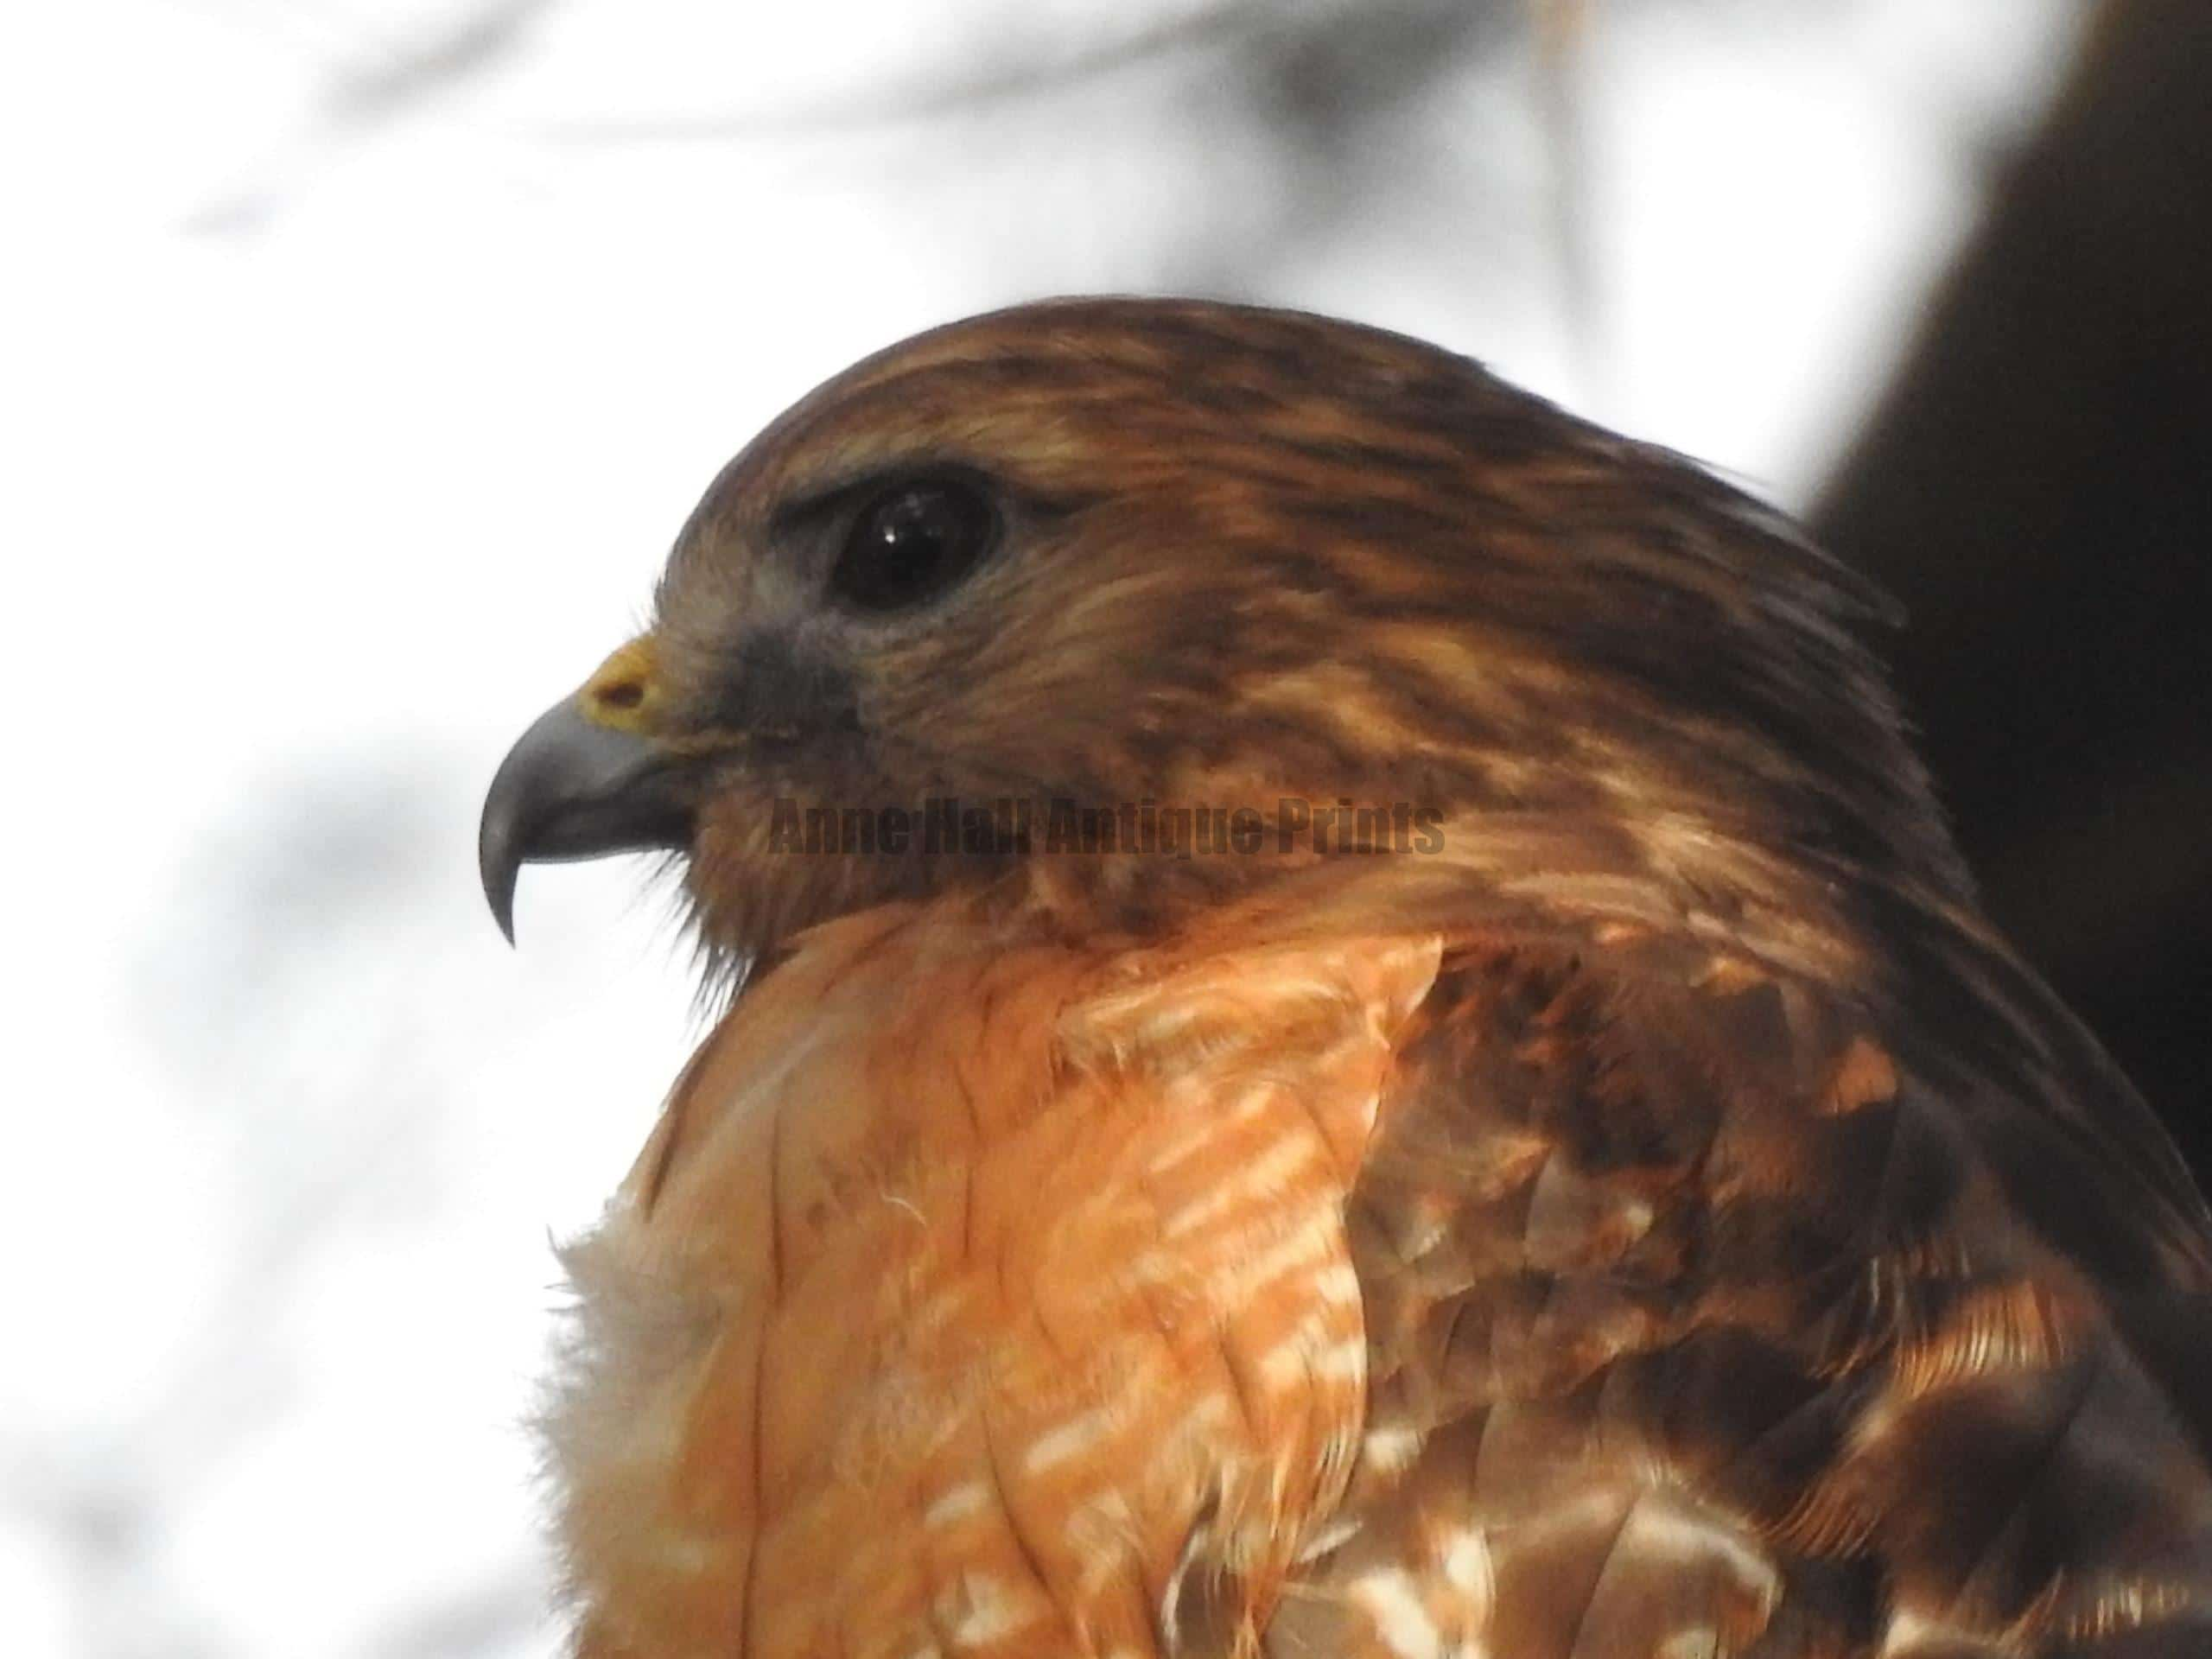 See Anne Hall's collections of art at the Southeastern Wildlife Exposition.  Sewe. February 17-20 2022. in the Galliard Center, Charleston, SC. Wildlife photography is a serious passion for naturalist Anne Hall. She studies birds in historic antique prints and real life. Here, a stunning photo by Anne, of a red shouldered hawk.